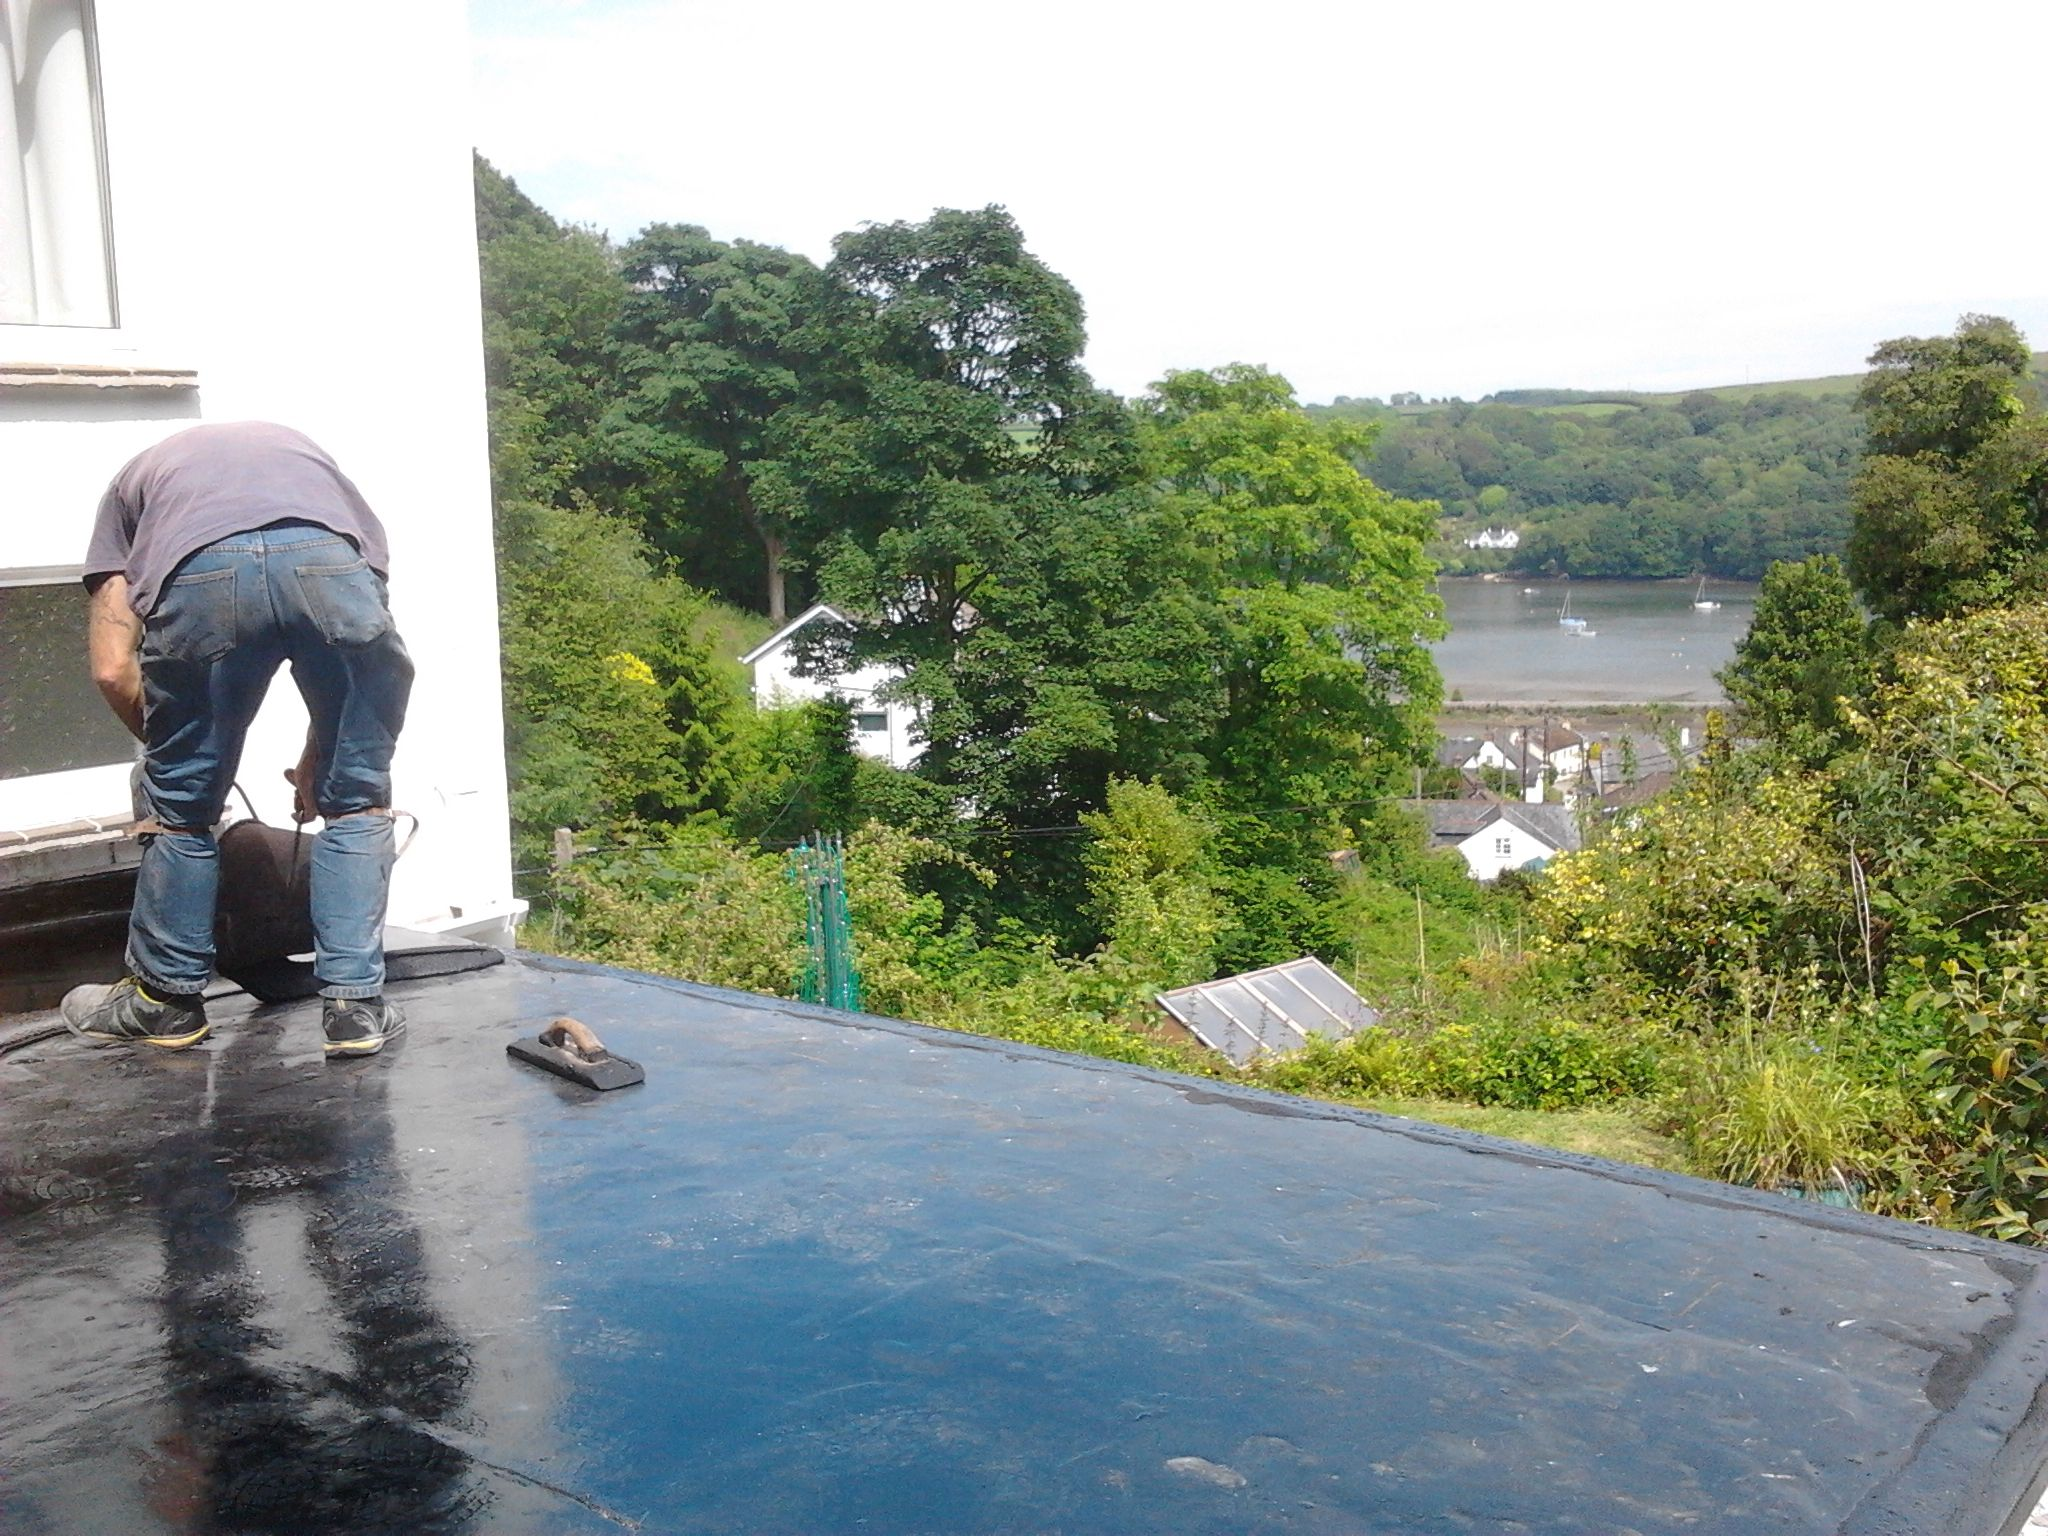 Mastic Asphalt Provides A Smooth, Non Toxic, Waterproof Coating. Pellow  Flat Roofing Are Experts Offering Roof Installation And Roof Repair In  Cornwall.